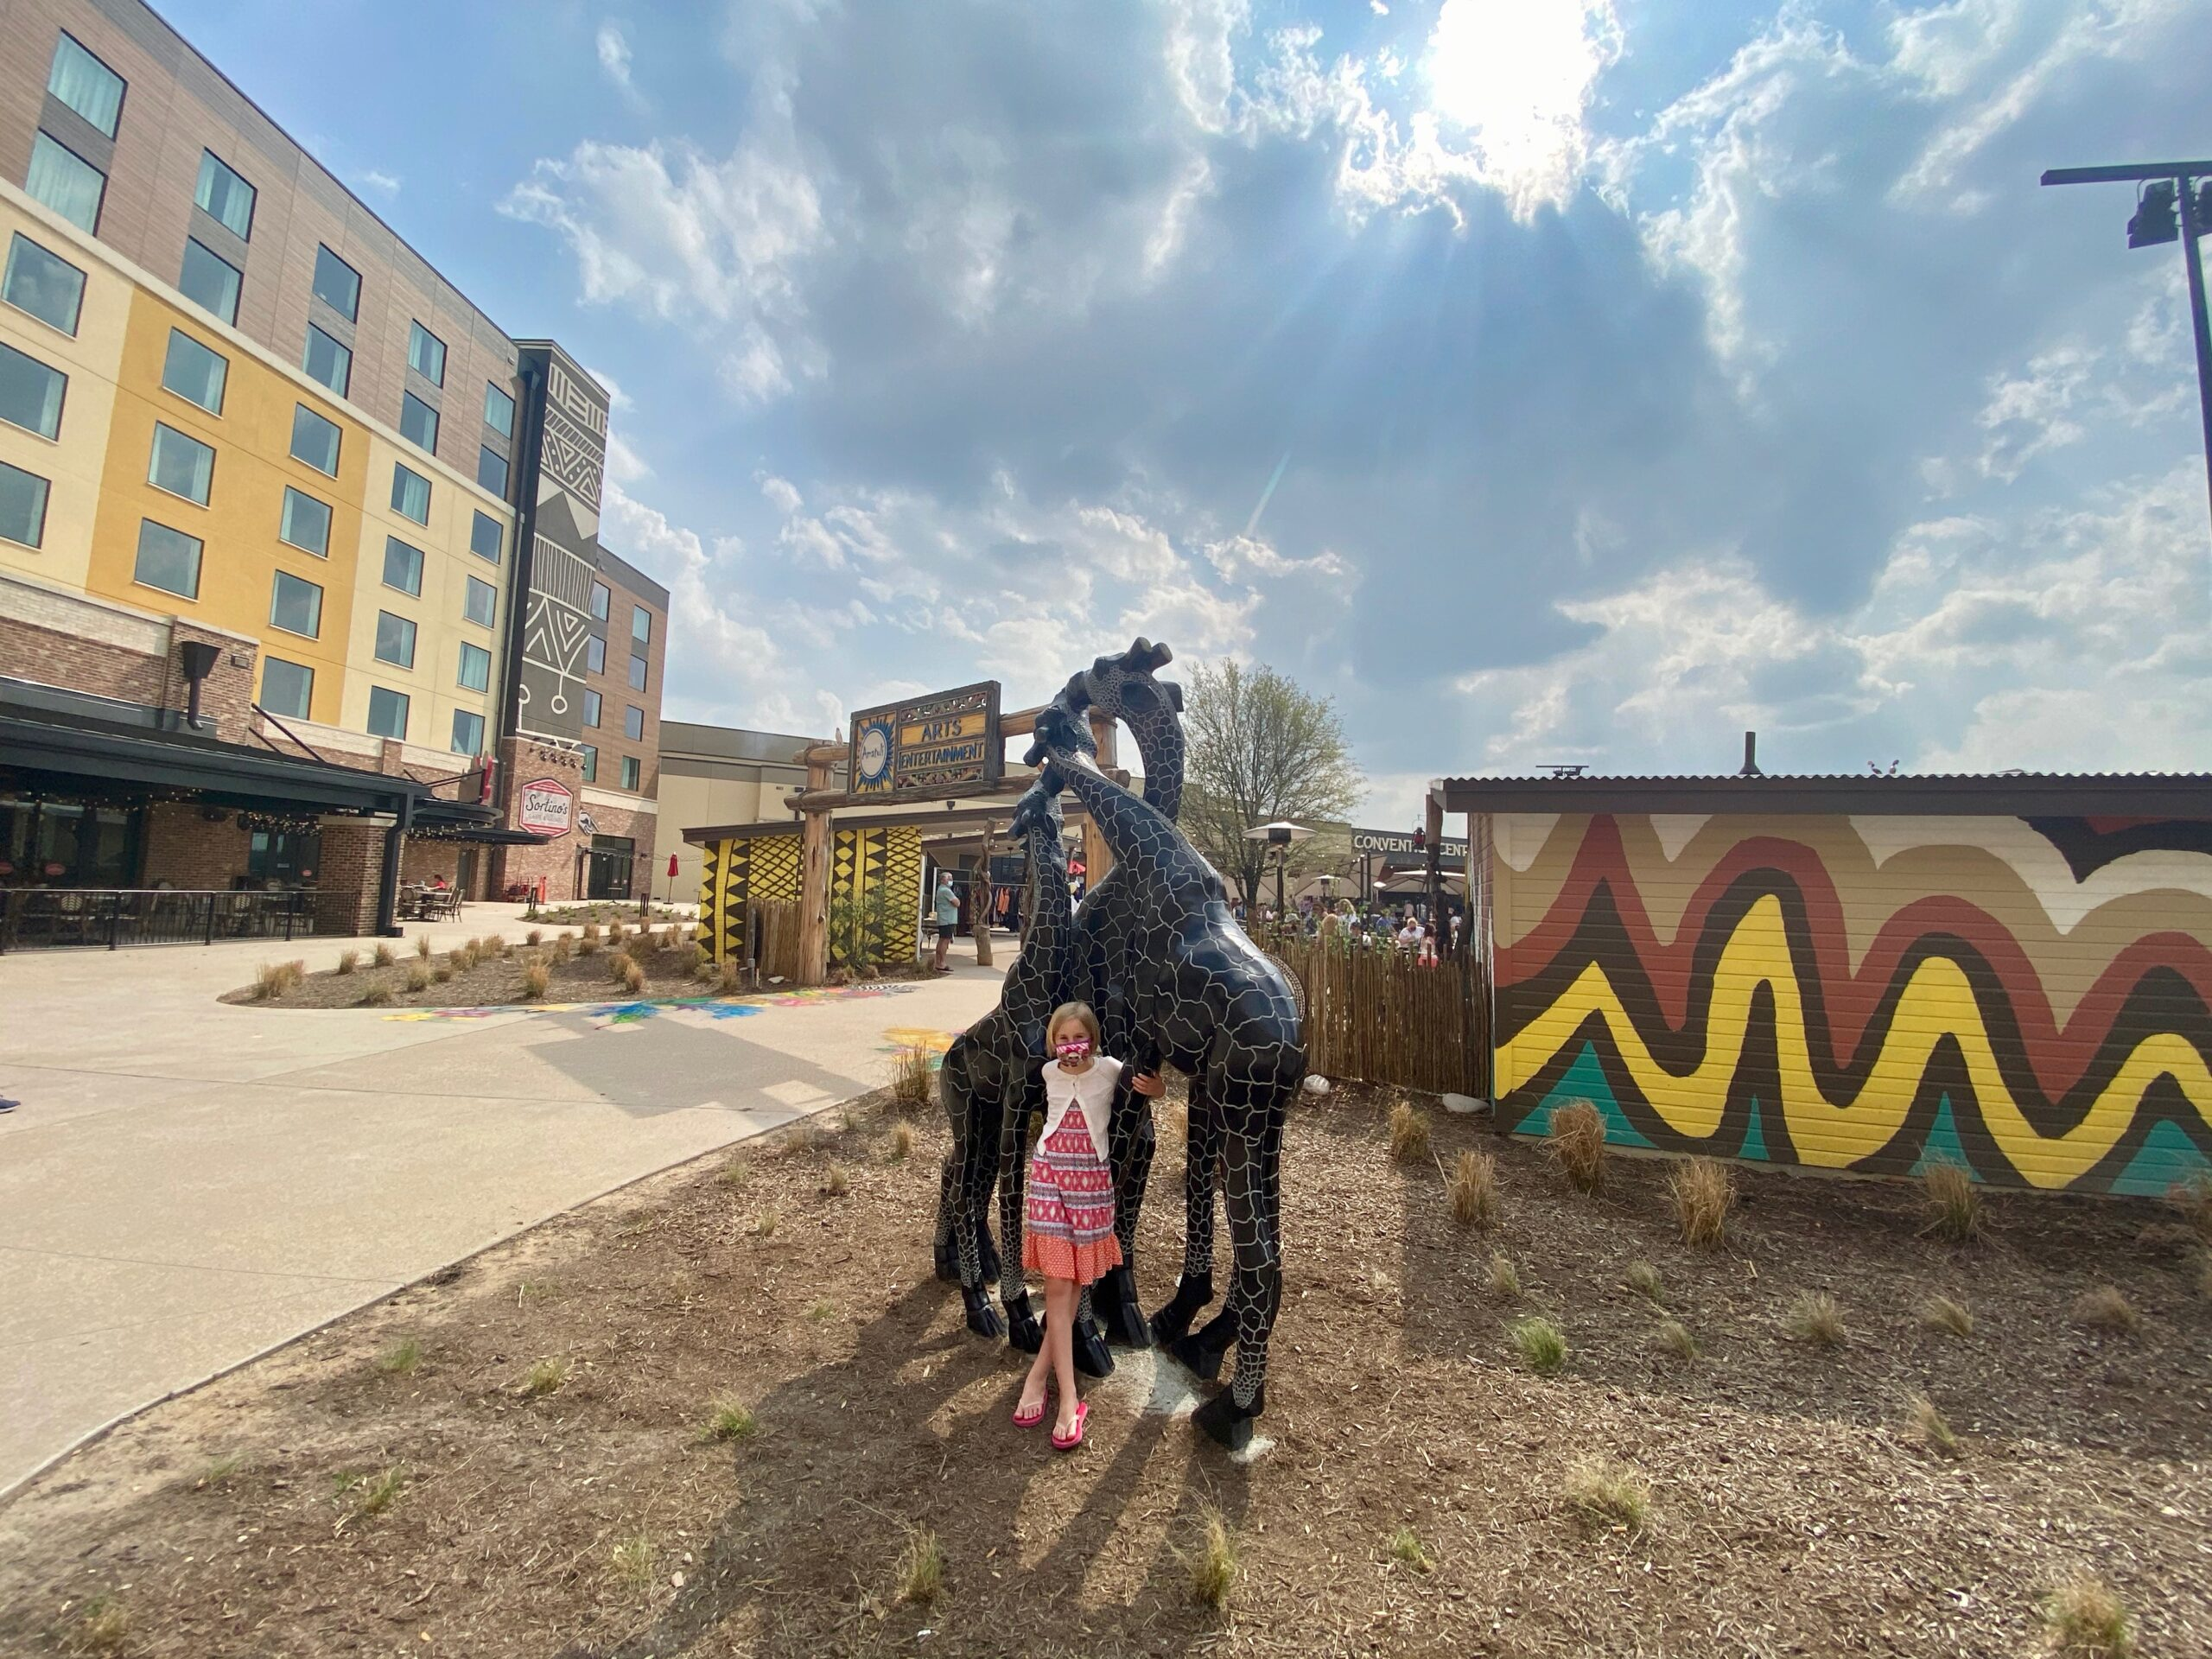 young girl posing with animal sculptures in front of the Kalahari resort in Texas